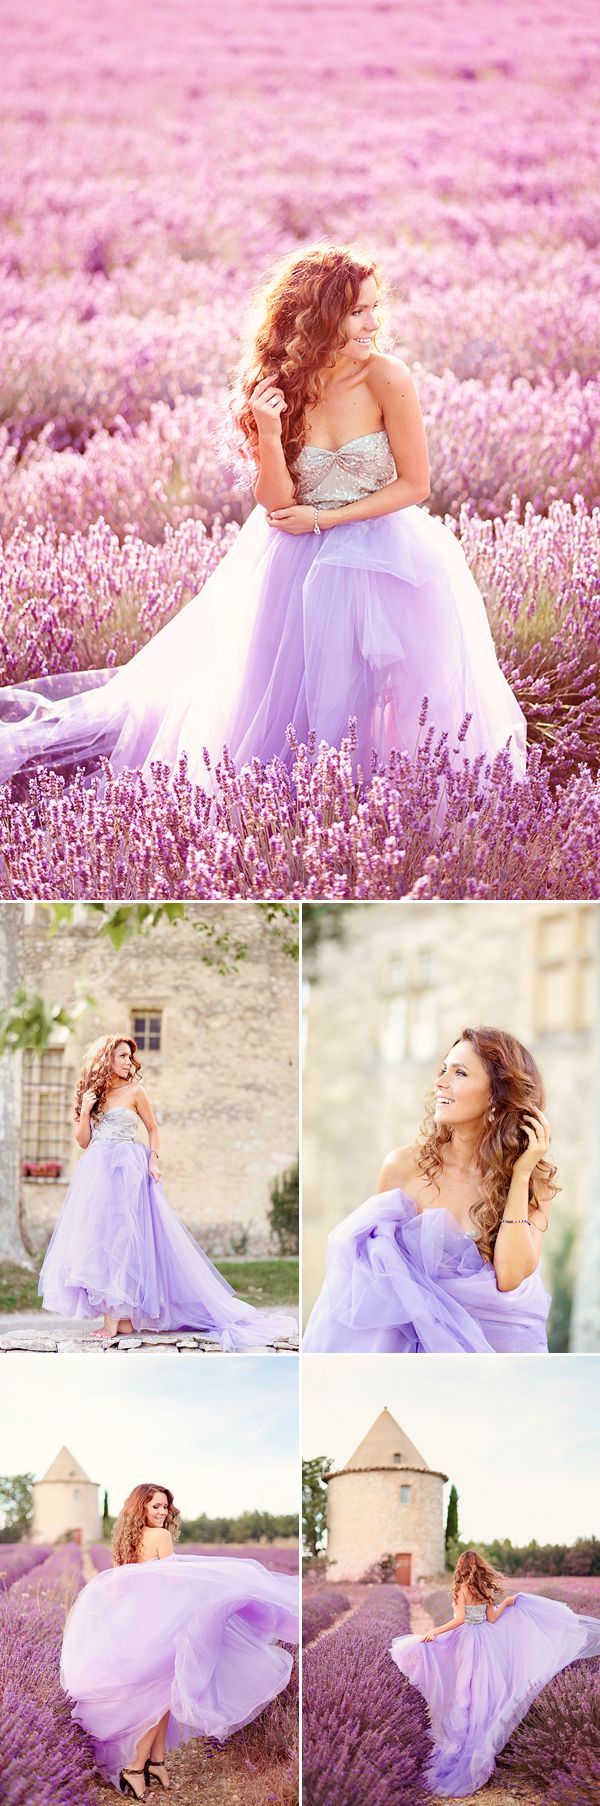 Romantic Provence Lavender Field Photo Session - Praise Wedding